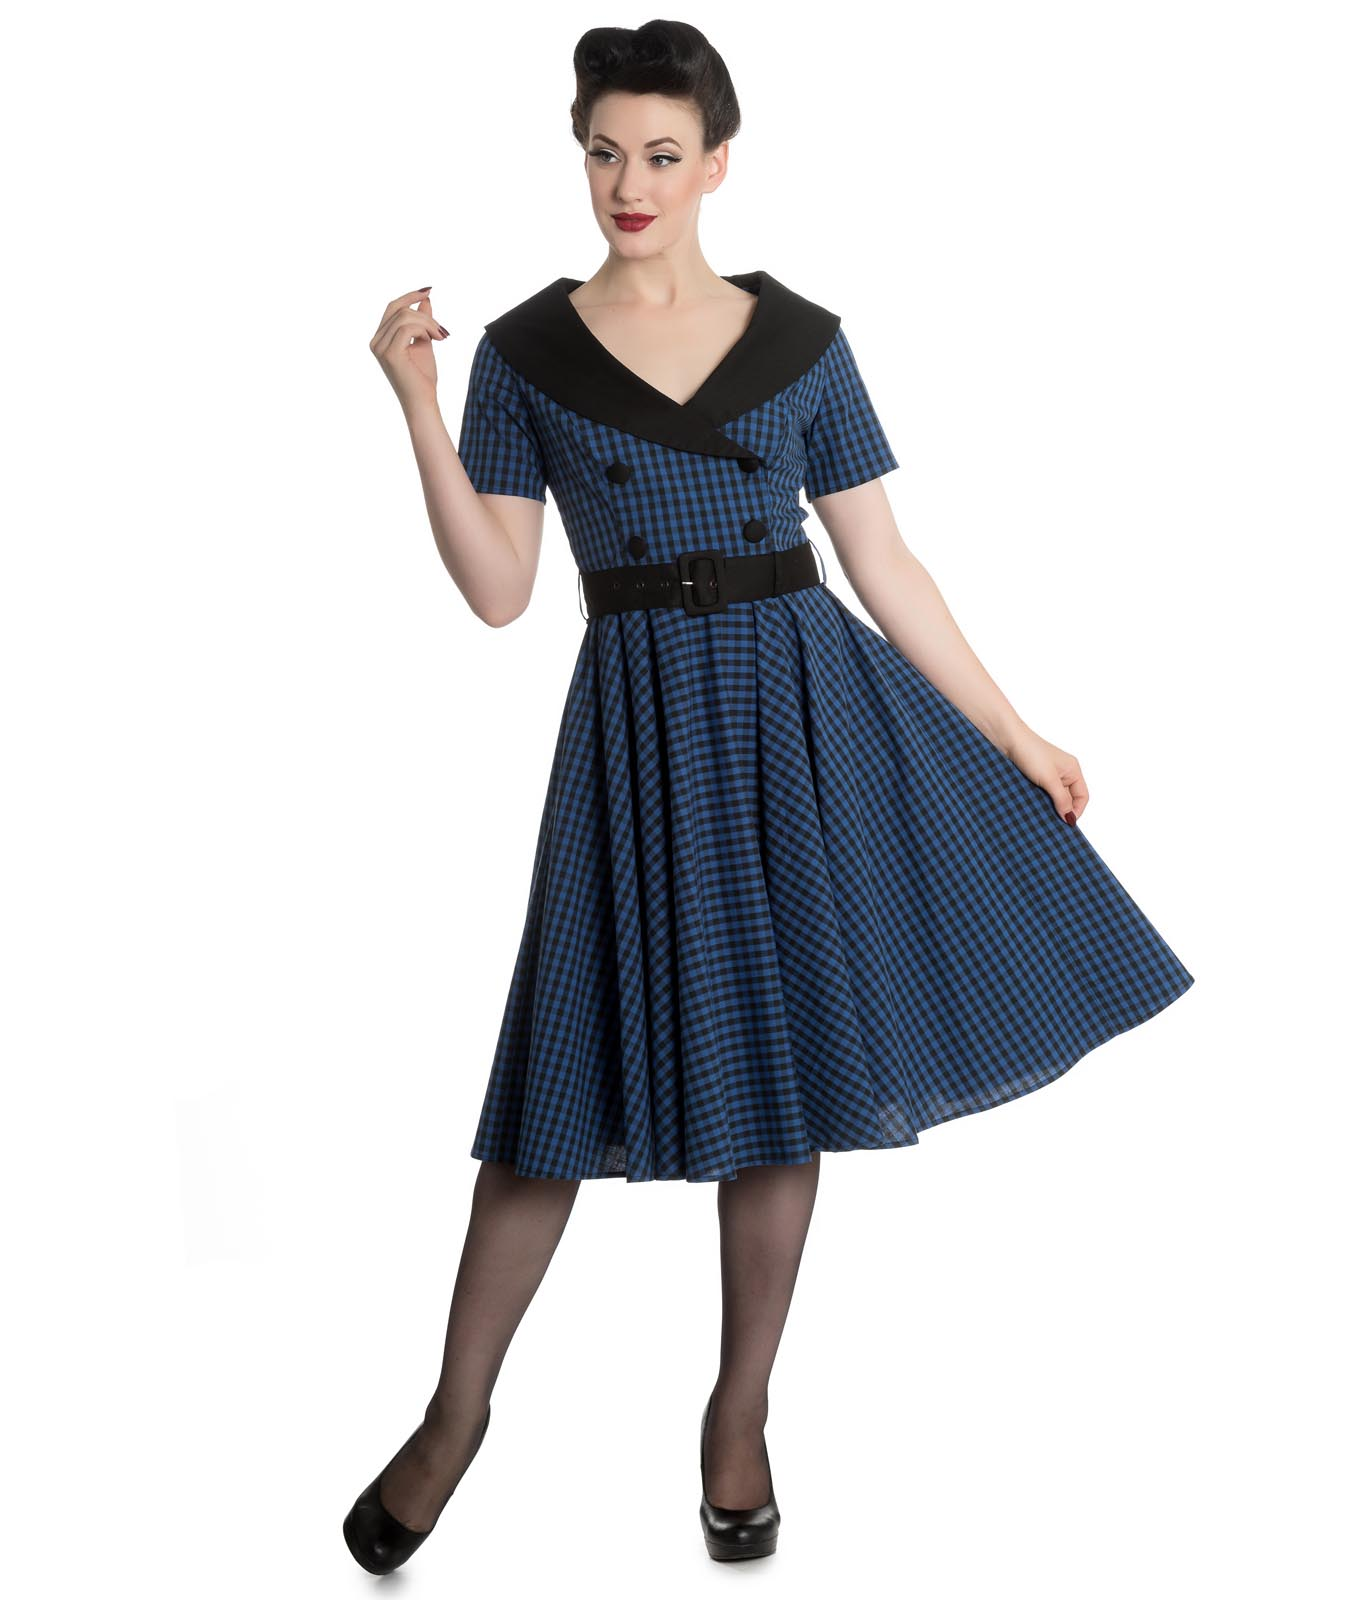 Hell-Bunny-40s-50s-Pin-Up-Swing-Dress-Black-Navy-BRIDGET-Gingham-All-Sizes thumbnail 3